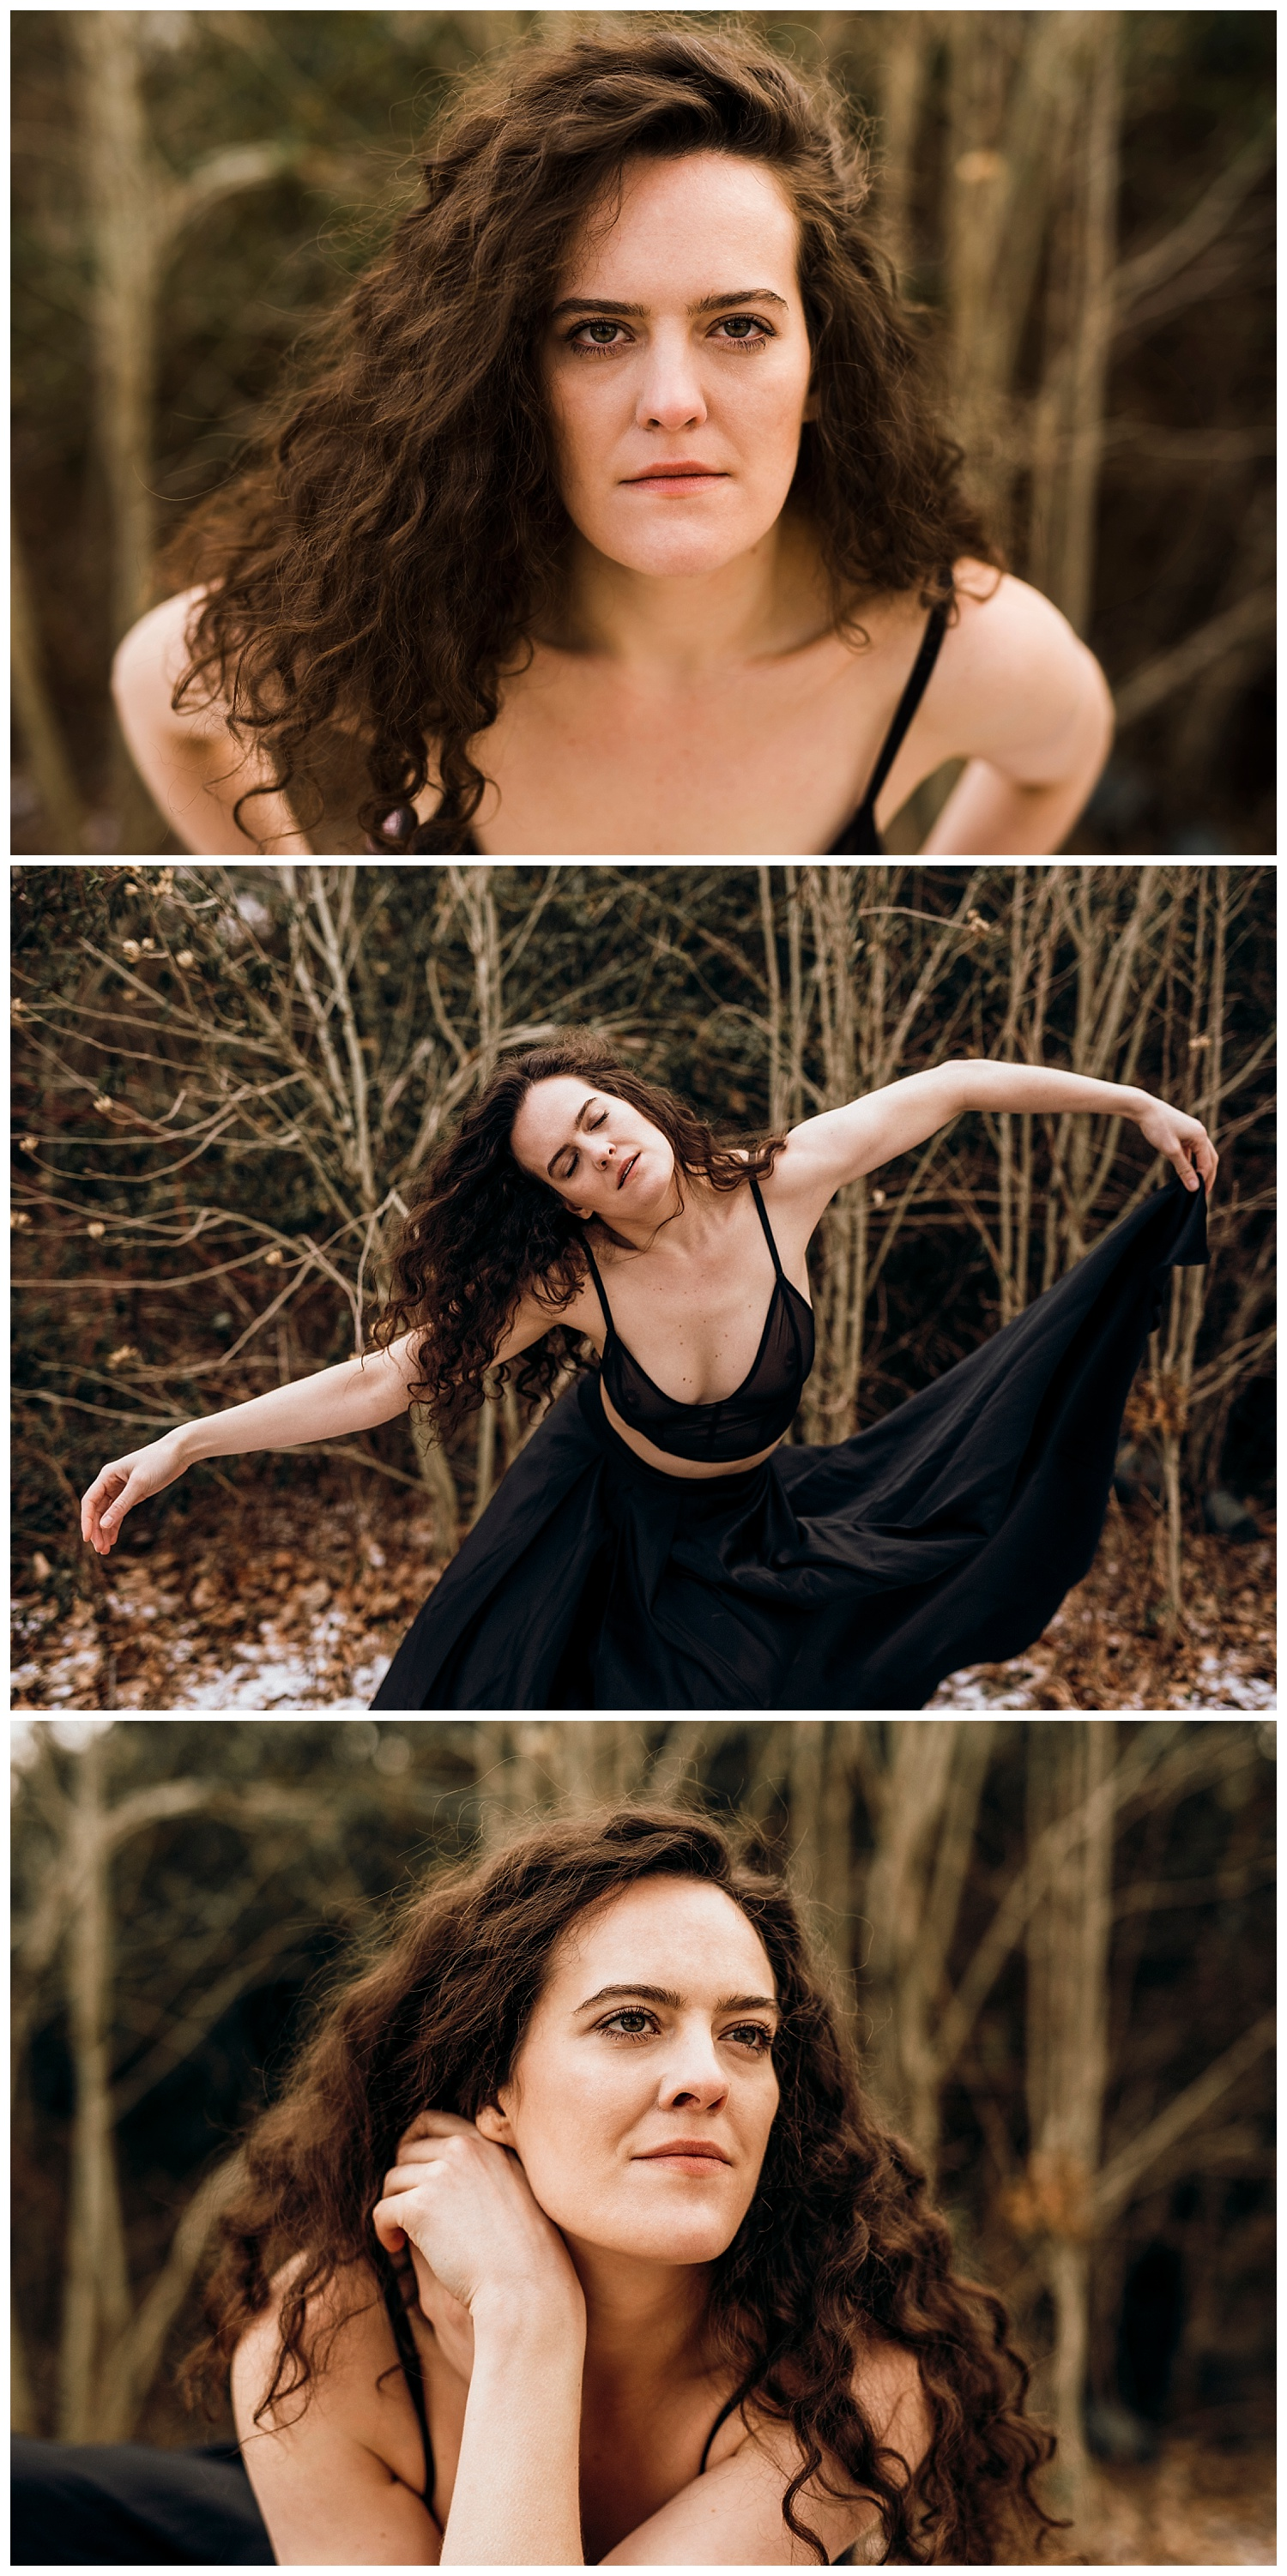 Dancer_Portraits_NYC_Drama_Headshots_Theatre_Photography_Apollo_Fields_14.jpg